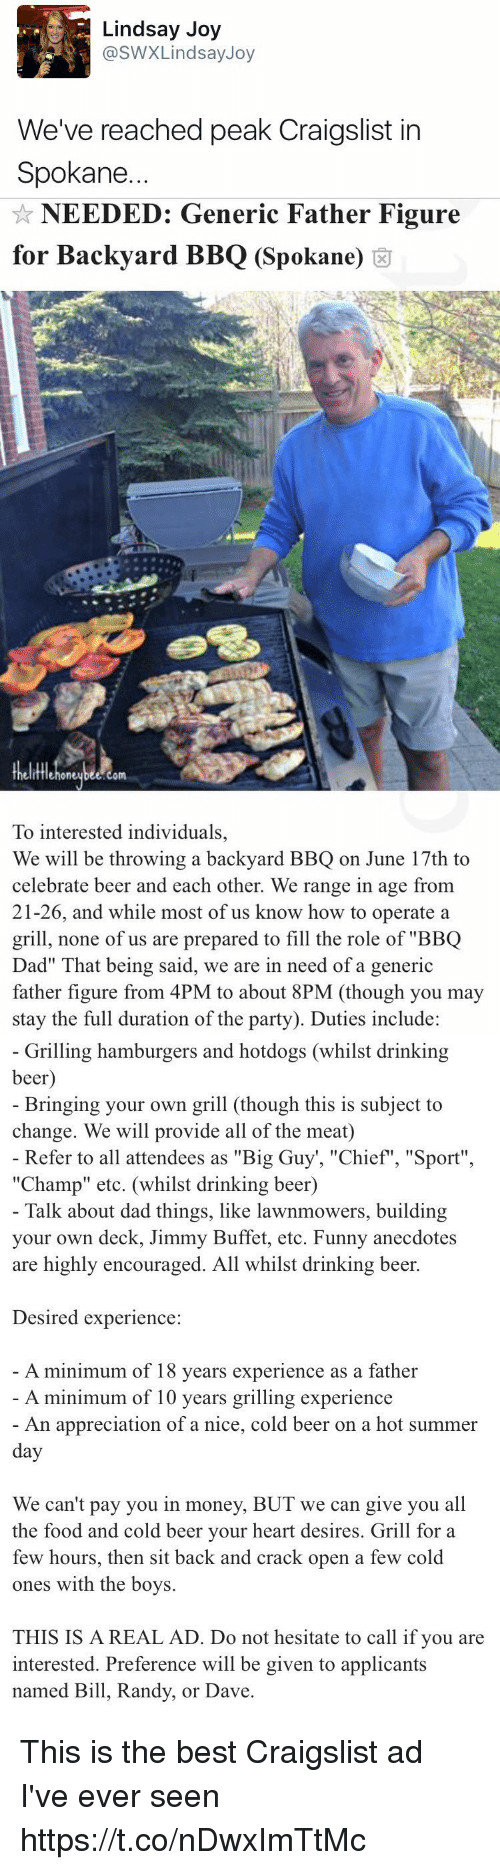 "Referance: Lindsay Joy  @SWX Lindsay Joy  We've reached peak Craigslist in  Spokane.   NEEDED: Generic Father Figure  for Backyard BBQ (Spokane)  om  To interested individuals,  We will be throwing a backyard BBQ on June 17th to  celebrate beer and each other. We range in age from  21-26, and while most of us know how to operate a  grill, none of us are prepared to fill the role of ""BBQ  Dad"" hat being said, we are in need of a generic  father figure from 4PM to about  8PM (though you may  stay the full duration of the party). Duties include:   Grilling hamburgers and hotdogs (whilst drinking  beer  Bringing your own grill (though this is subject to  change. We will provide all of the meat)  Refer to all attendees as ""Big Guy ""Chief"", ""Sport""  ""Champ"" etc. (whilst drinking beer)  Talk about dad things, like lawnmowers, building  your own deck, Jimmy Buffet, etc. Funny anecdotes  are highly encouraged. All whilst drinking beer.  Desired experience  A minimum of 18 years experience as a father  A minimum of 10 years grilling experience  An appreciation of a nice, cold beer on a hot summer  day  We can't pay you in money, BUT we can give you all  the food and cold beer your heart desires. Grill for a  few hours, then sit back and crack open a few cold  ones with the boys.  THIS IS A REAL AD. Do not hesitate to call if you are  interested. Preference will be given to applicants  named Bill, Randy, or Dave This is the best Craigslist ad I've ever seen https://t.co/nDwxImTtMc"